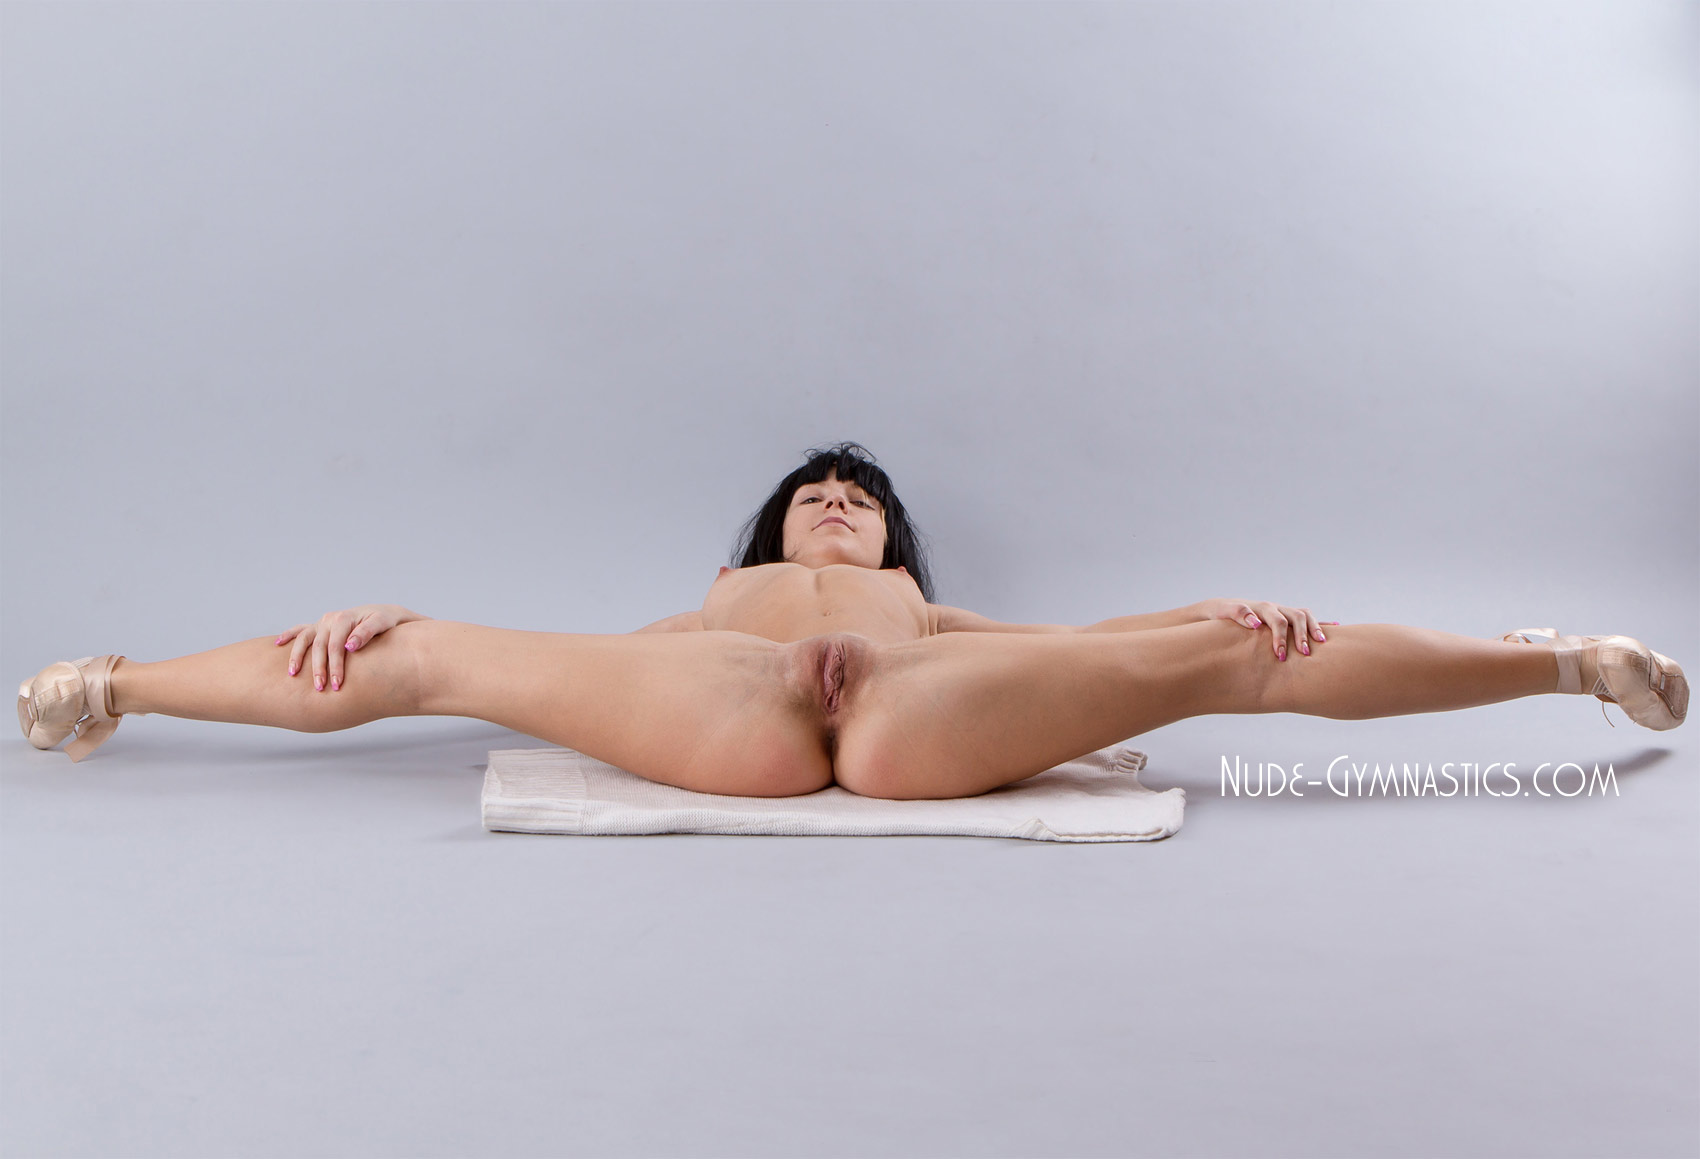 Female gymnasts Nude